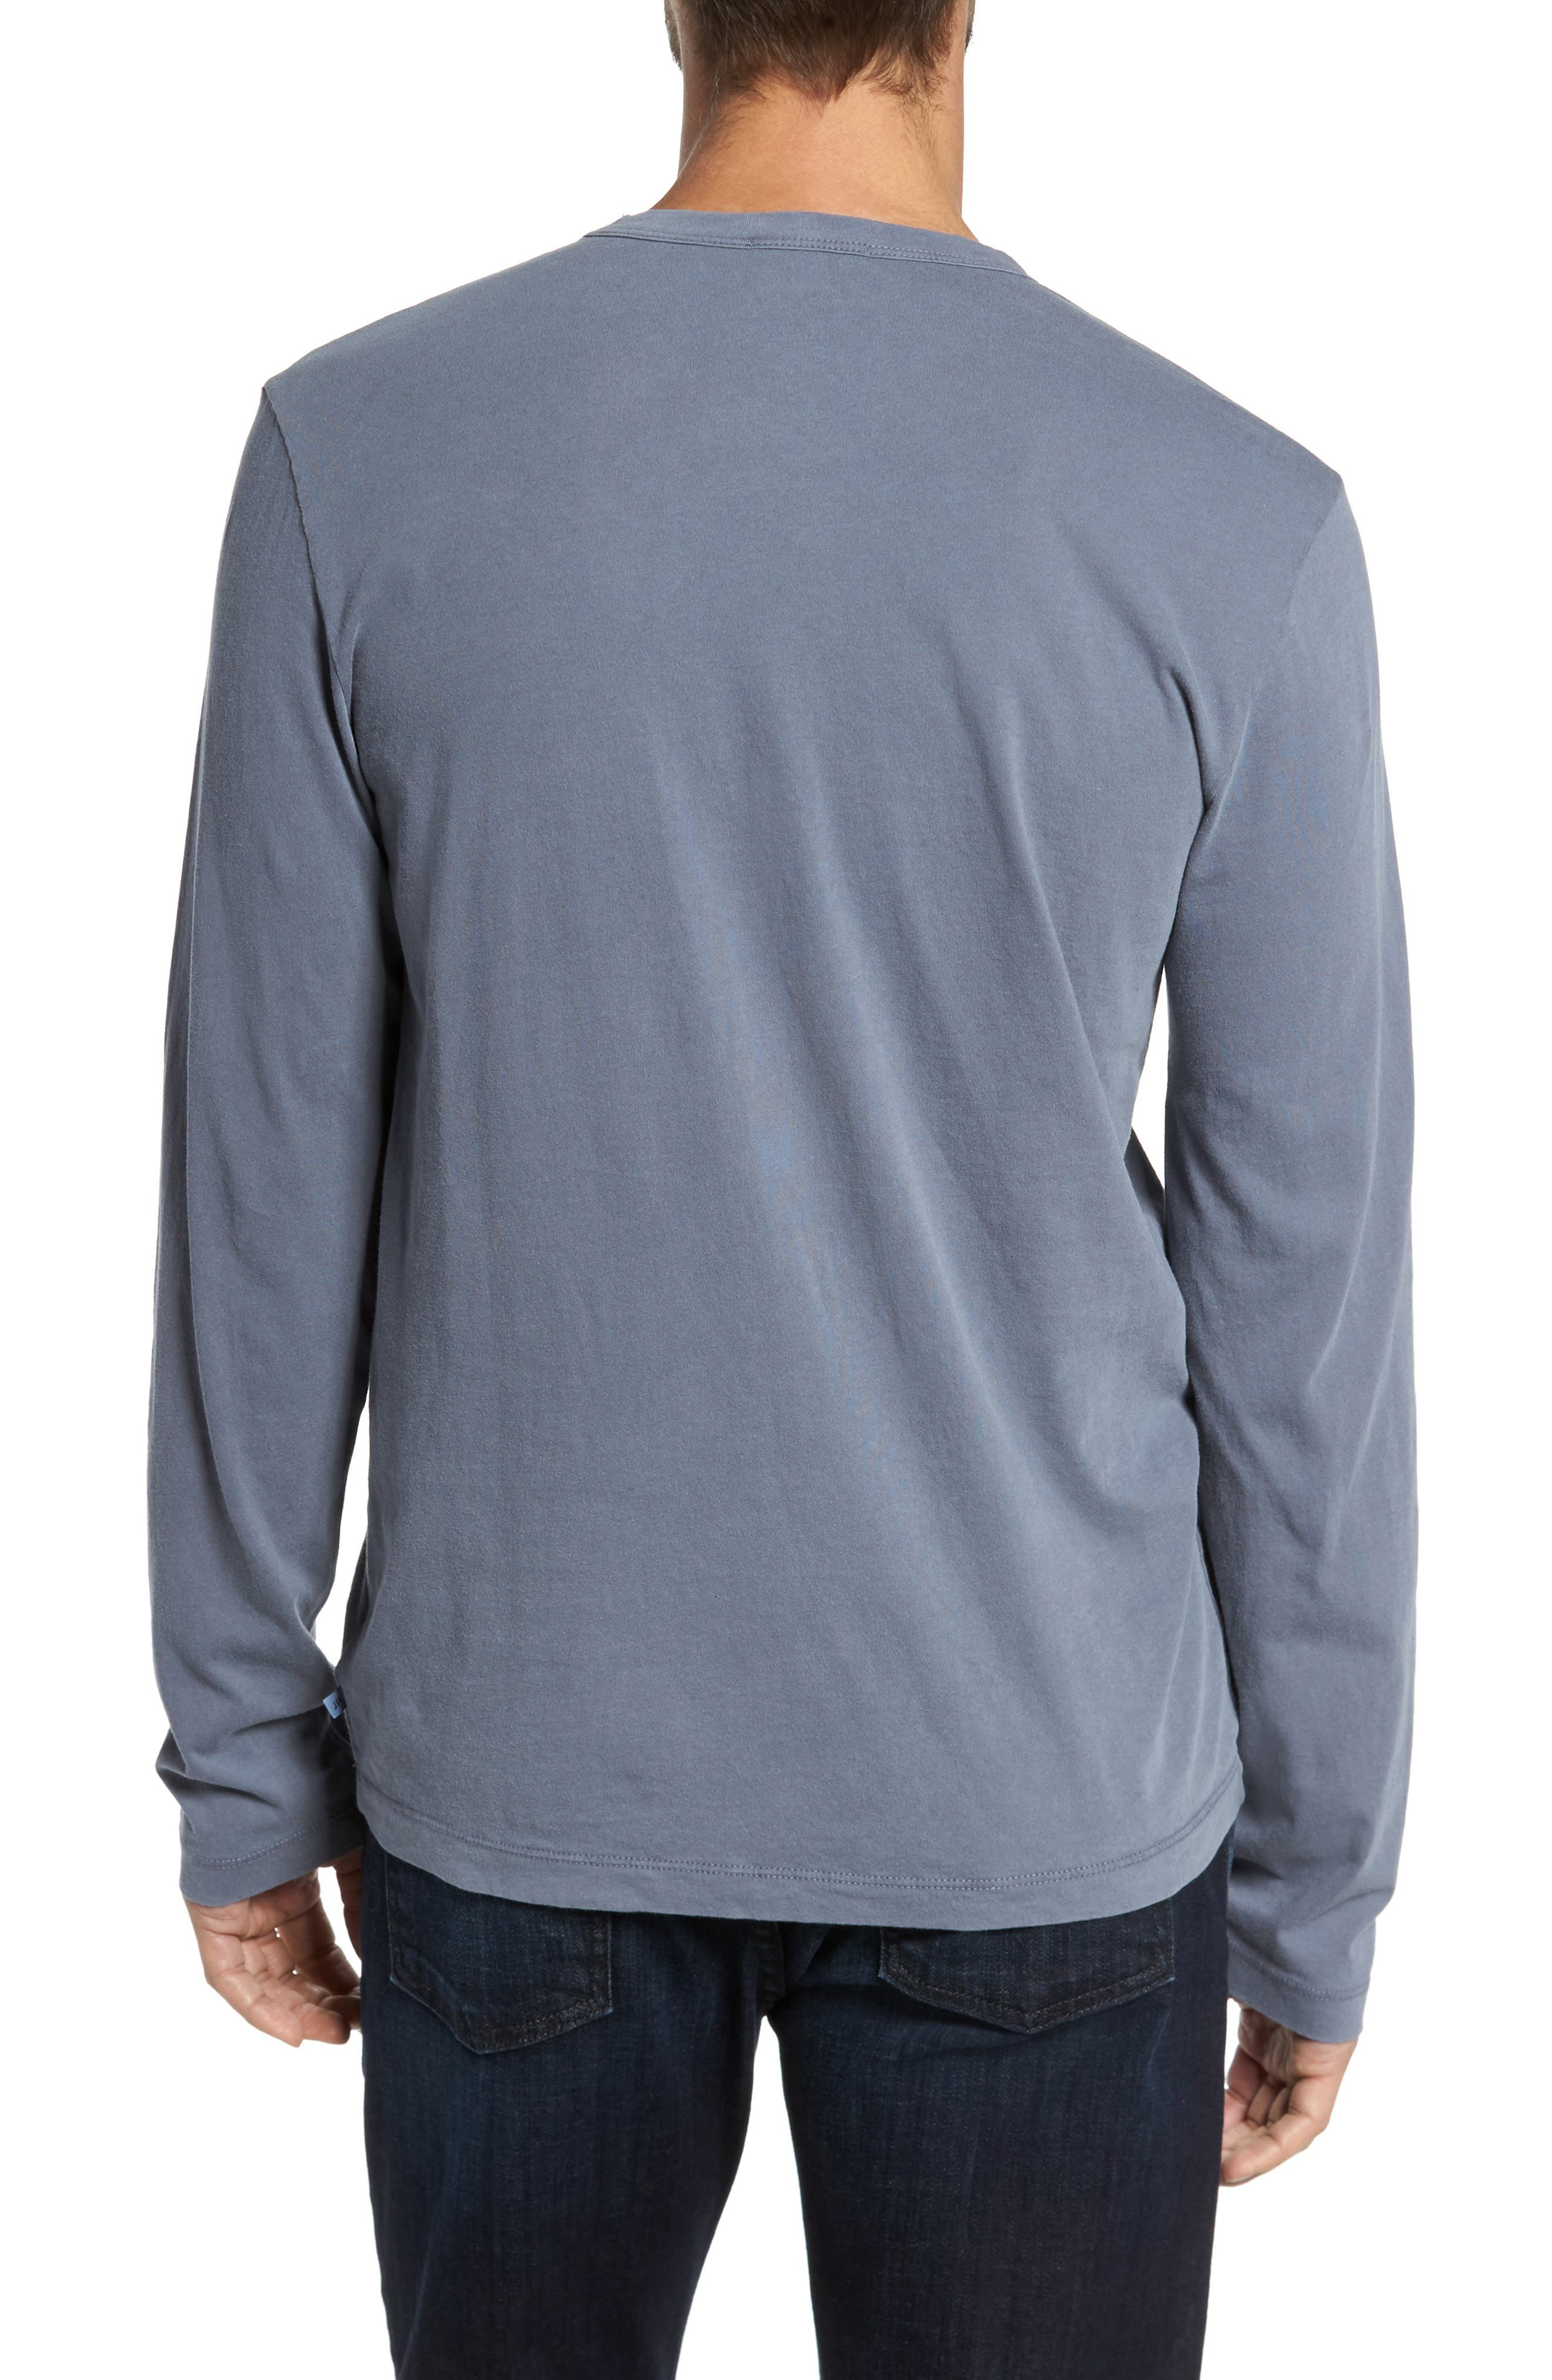 Long Sleeve Crewneck T-Shirt,                             Alternate thumbnail 3, color,                             NORTH PIGMENT GREY